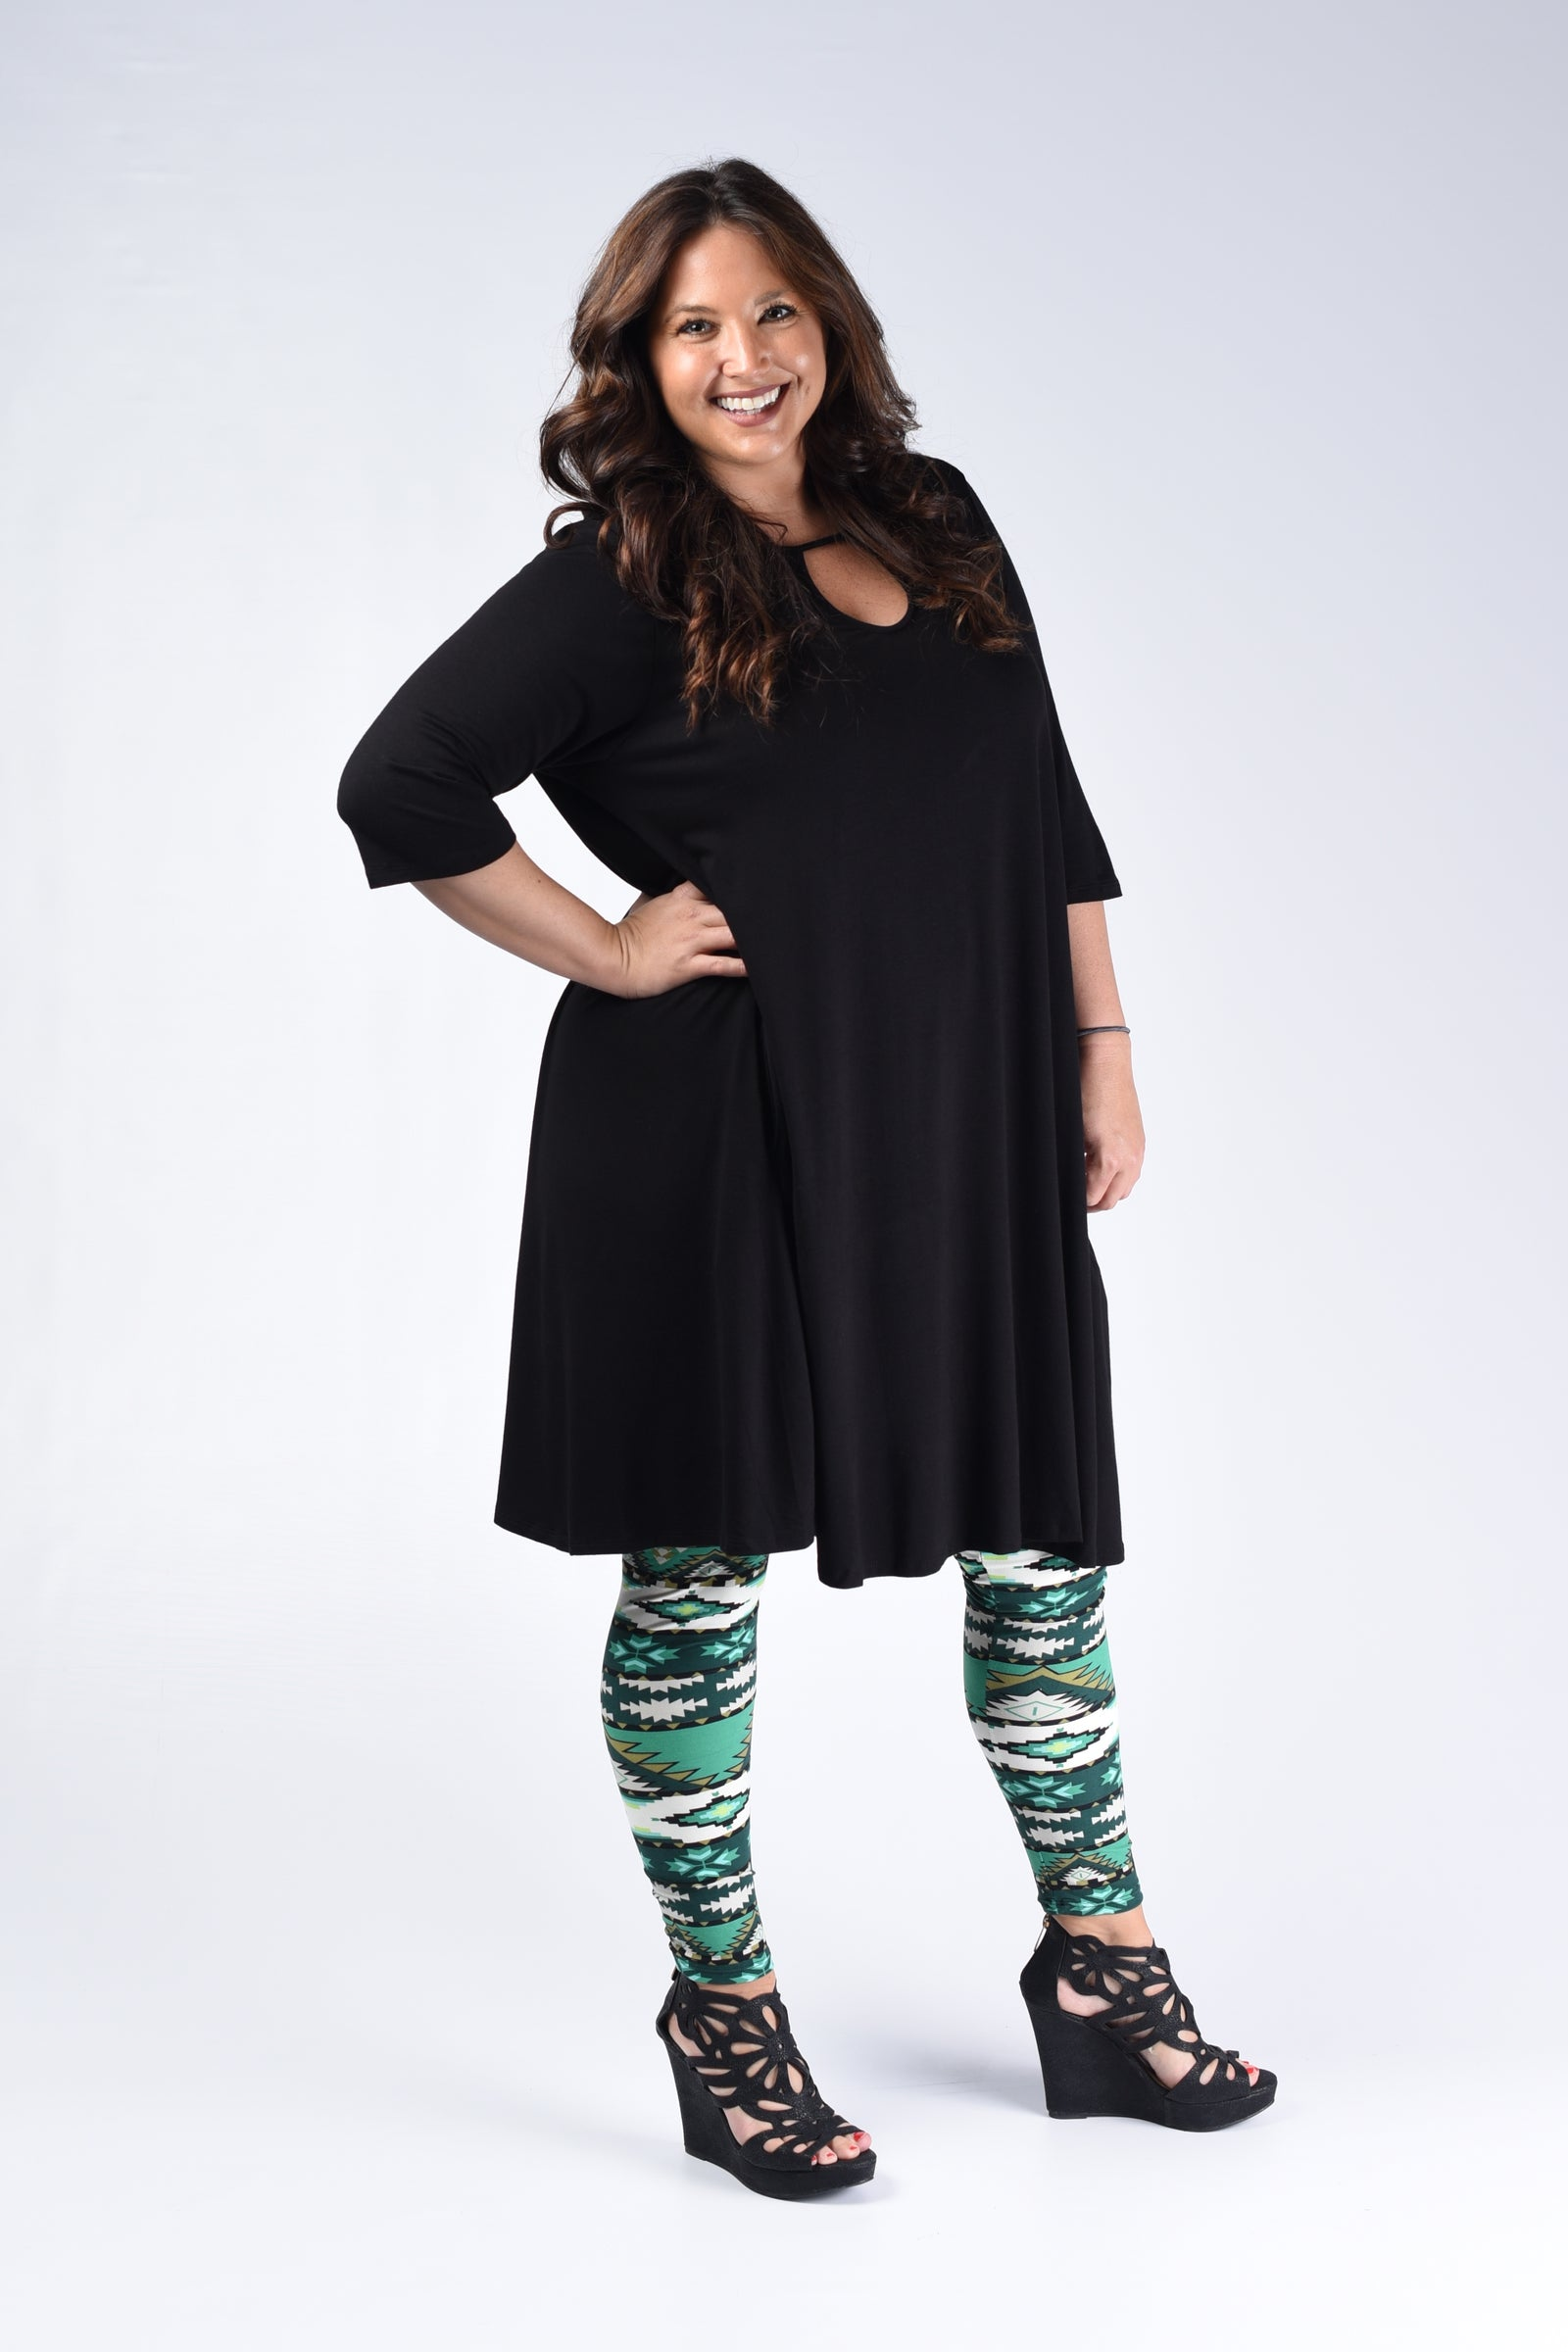 Green Tribal Leggings - www.mycurvystore.com - Curvy Boutique - Plus Size